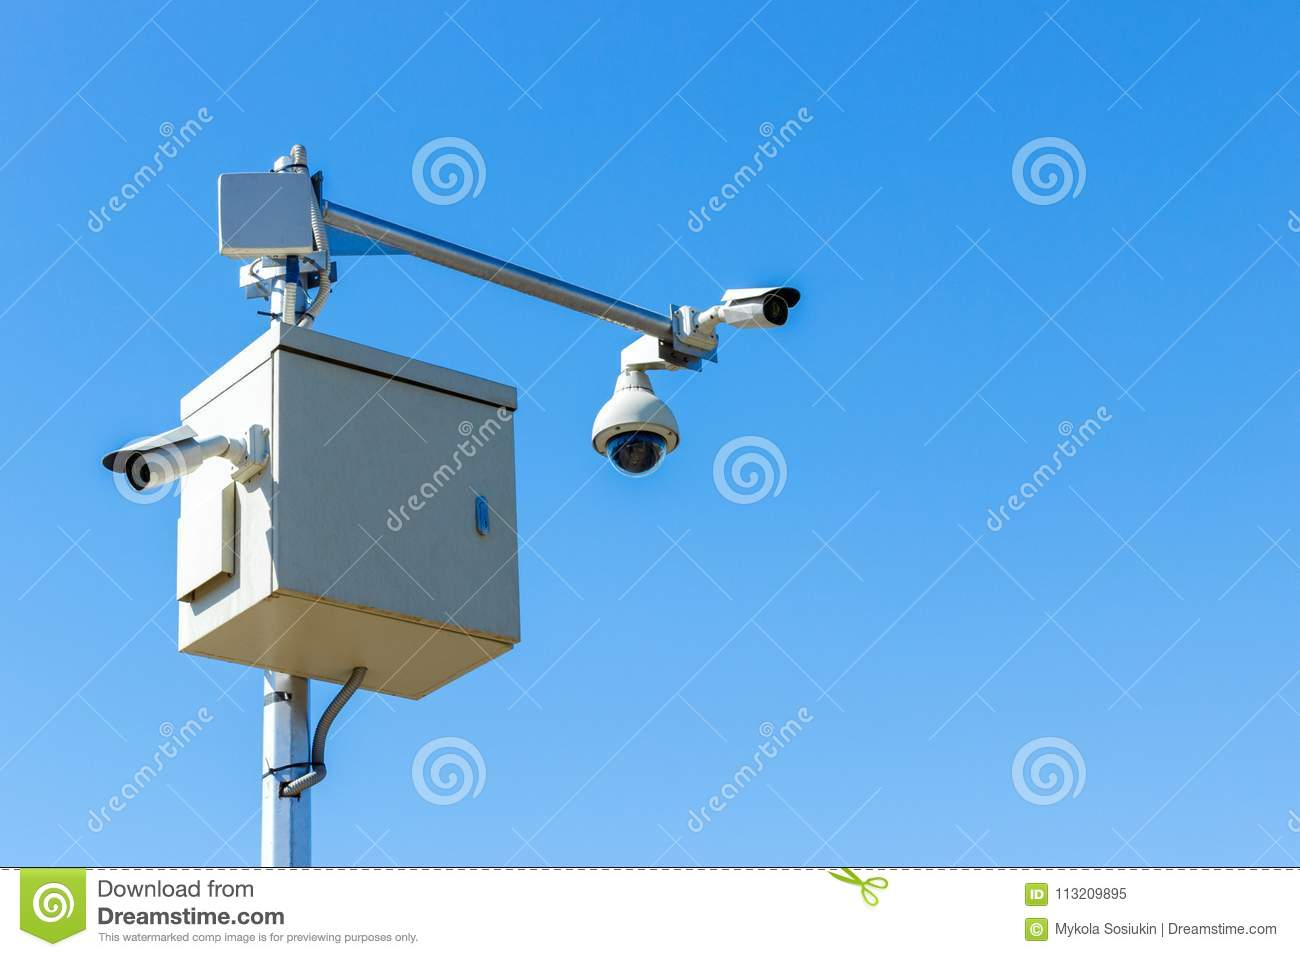 Cctv camera on sky background Infrared camera and zoom tracking system